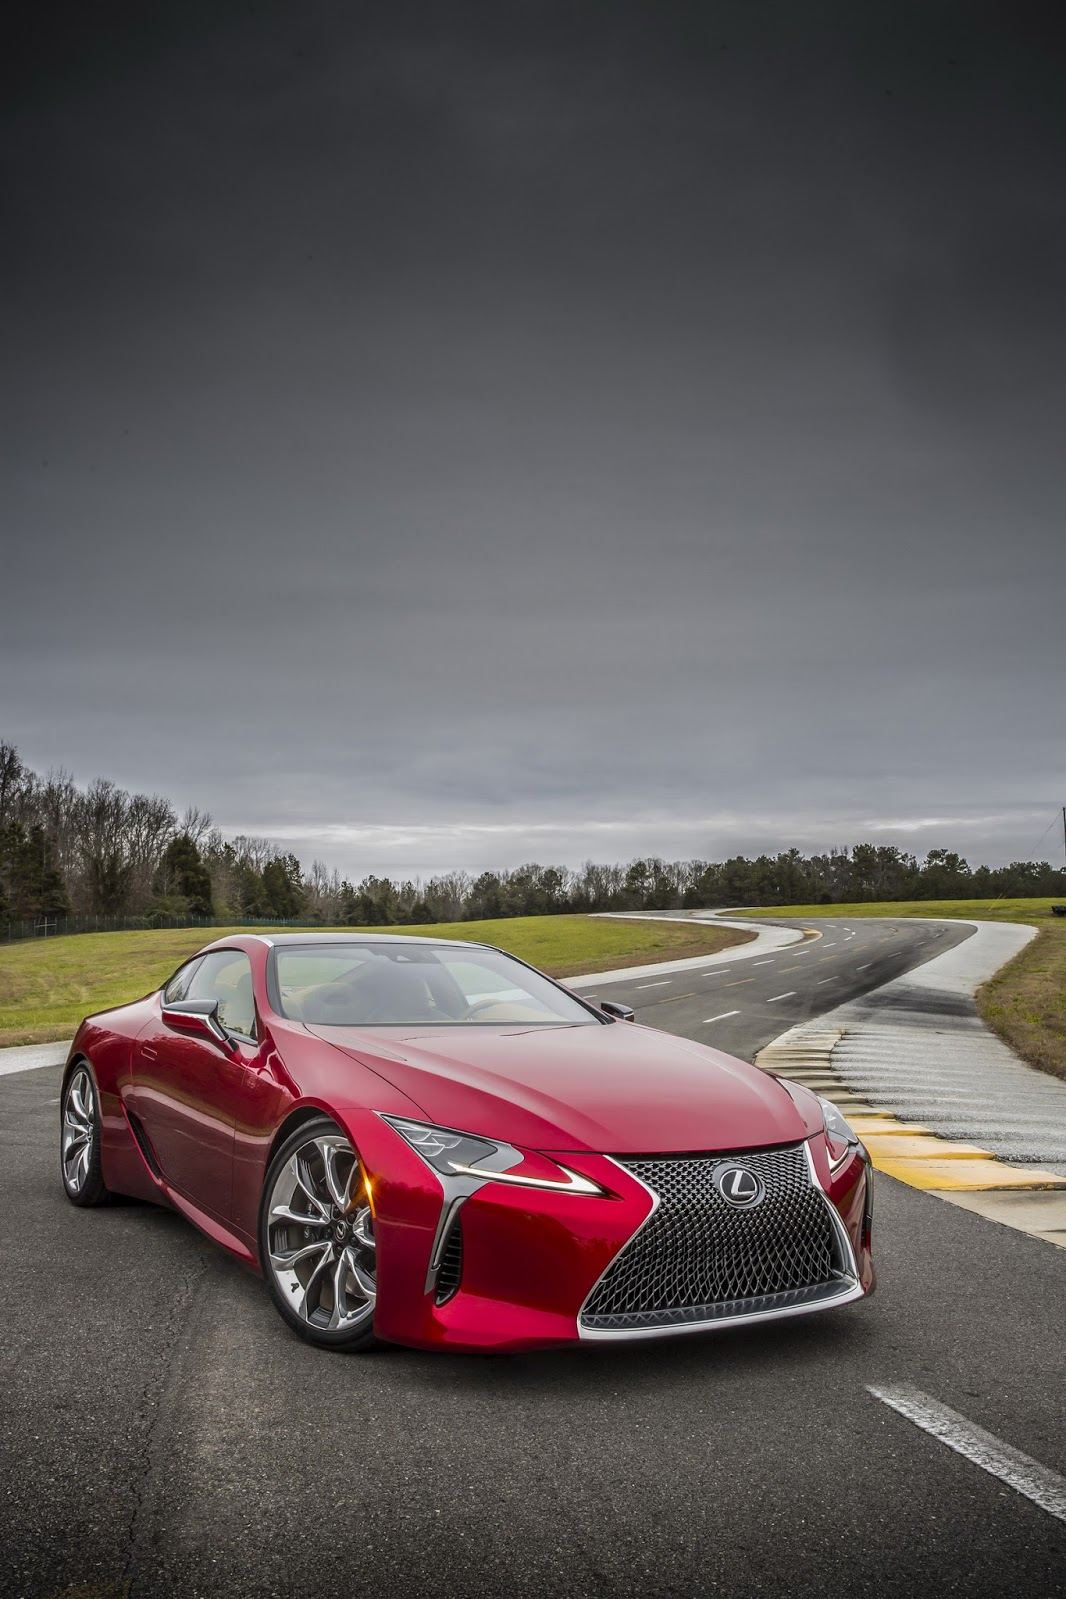 Lexus Cars - News: Stunning LC 500 coupe unveiled. Arrives 2017